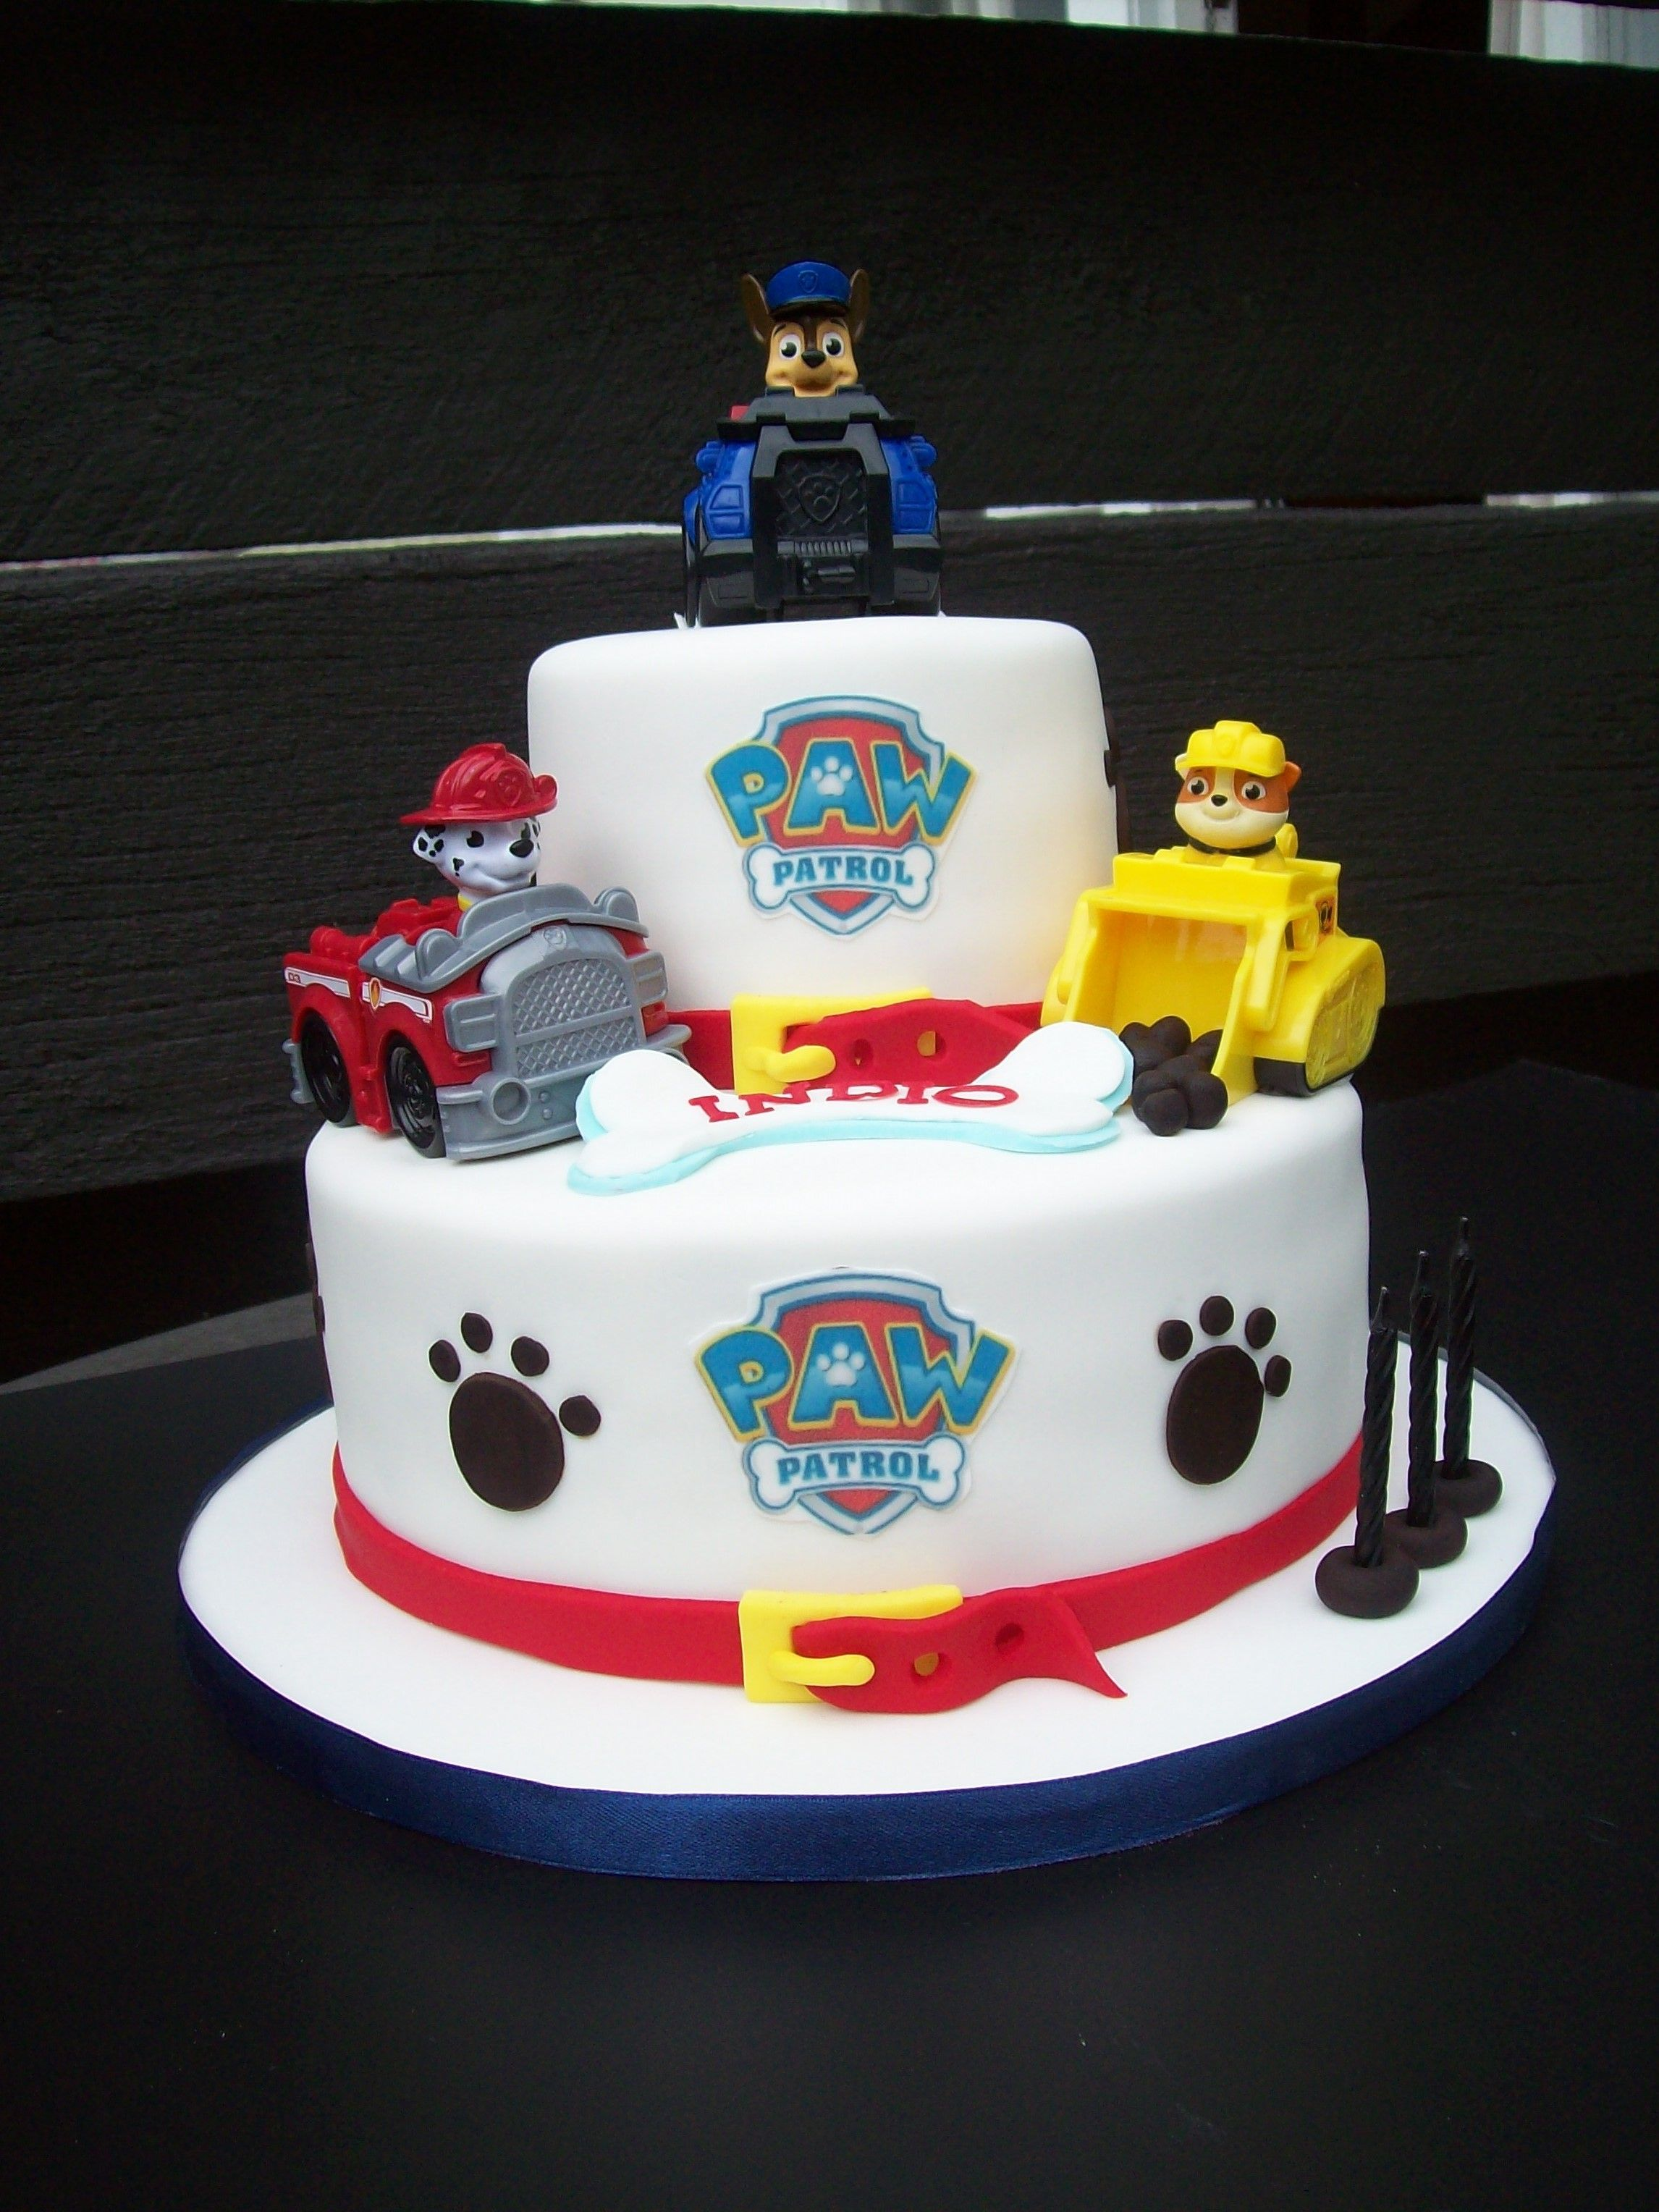 Paw Patrol Cake Auckland  Figurines Bought From A Licensed - Paw patrol birthday cake